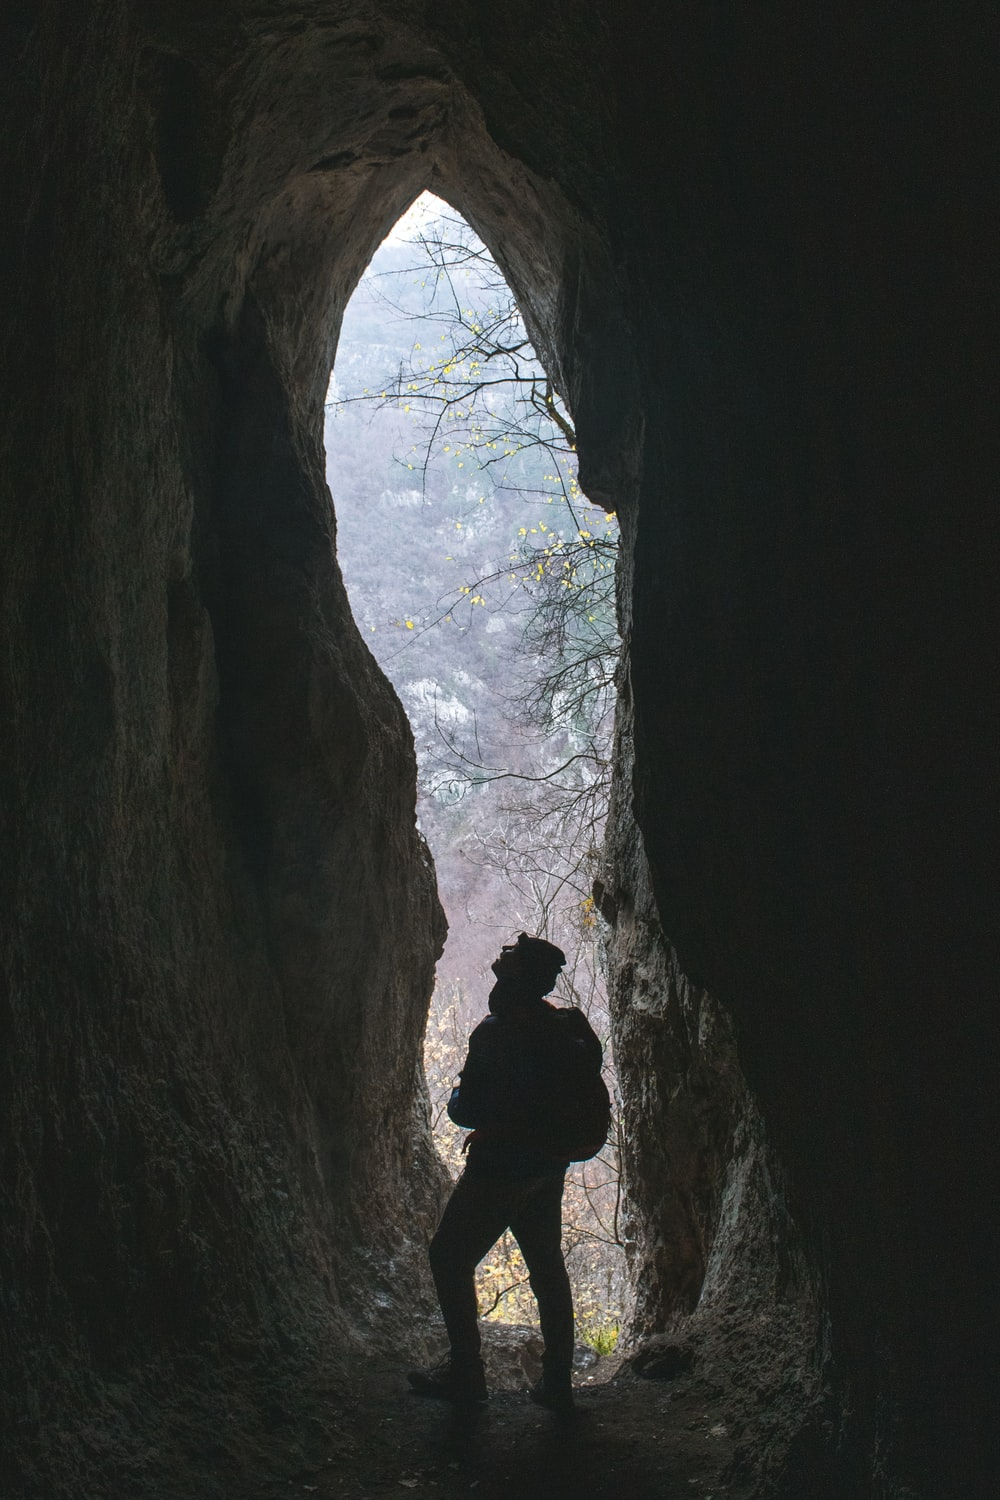 silhouette of man in cave during daytime